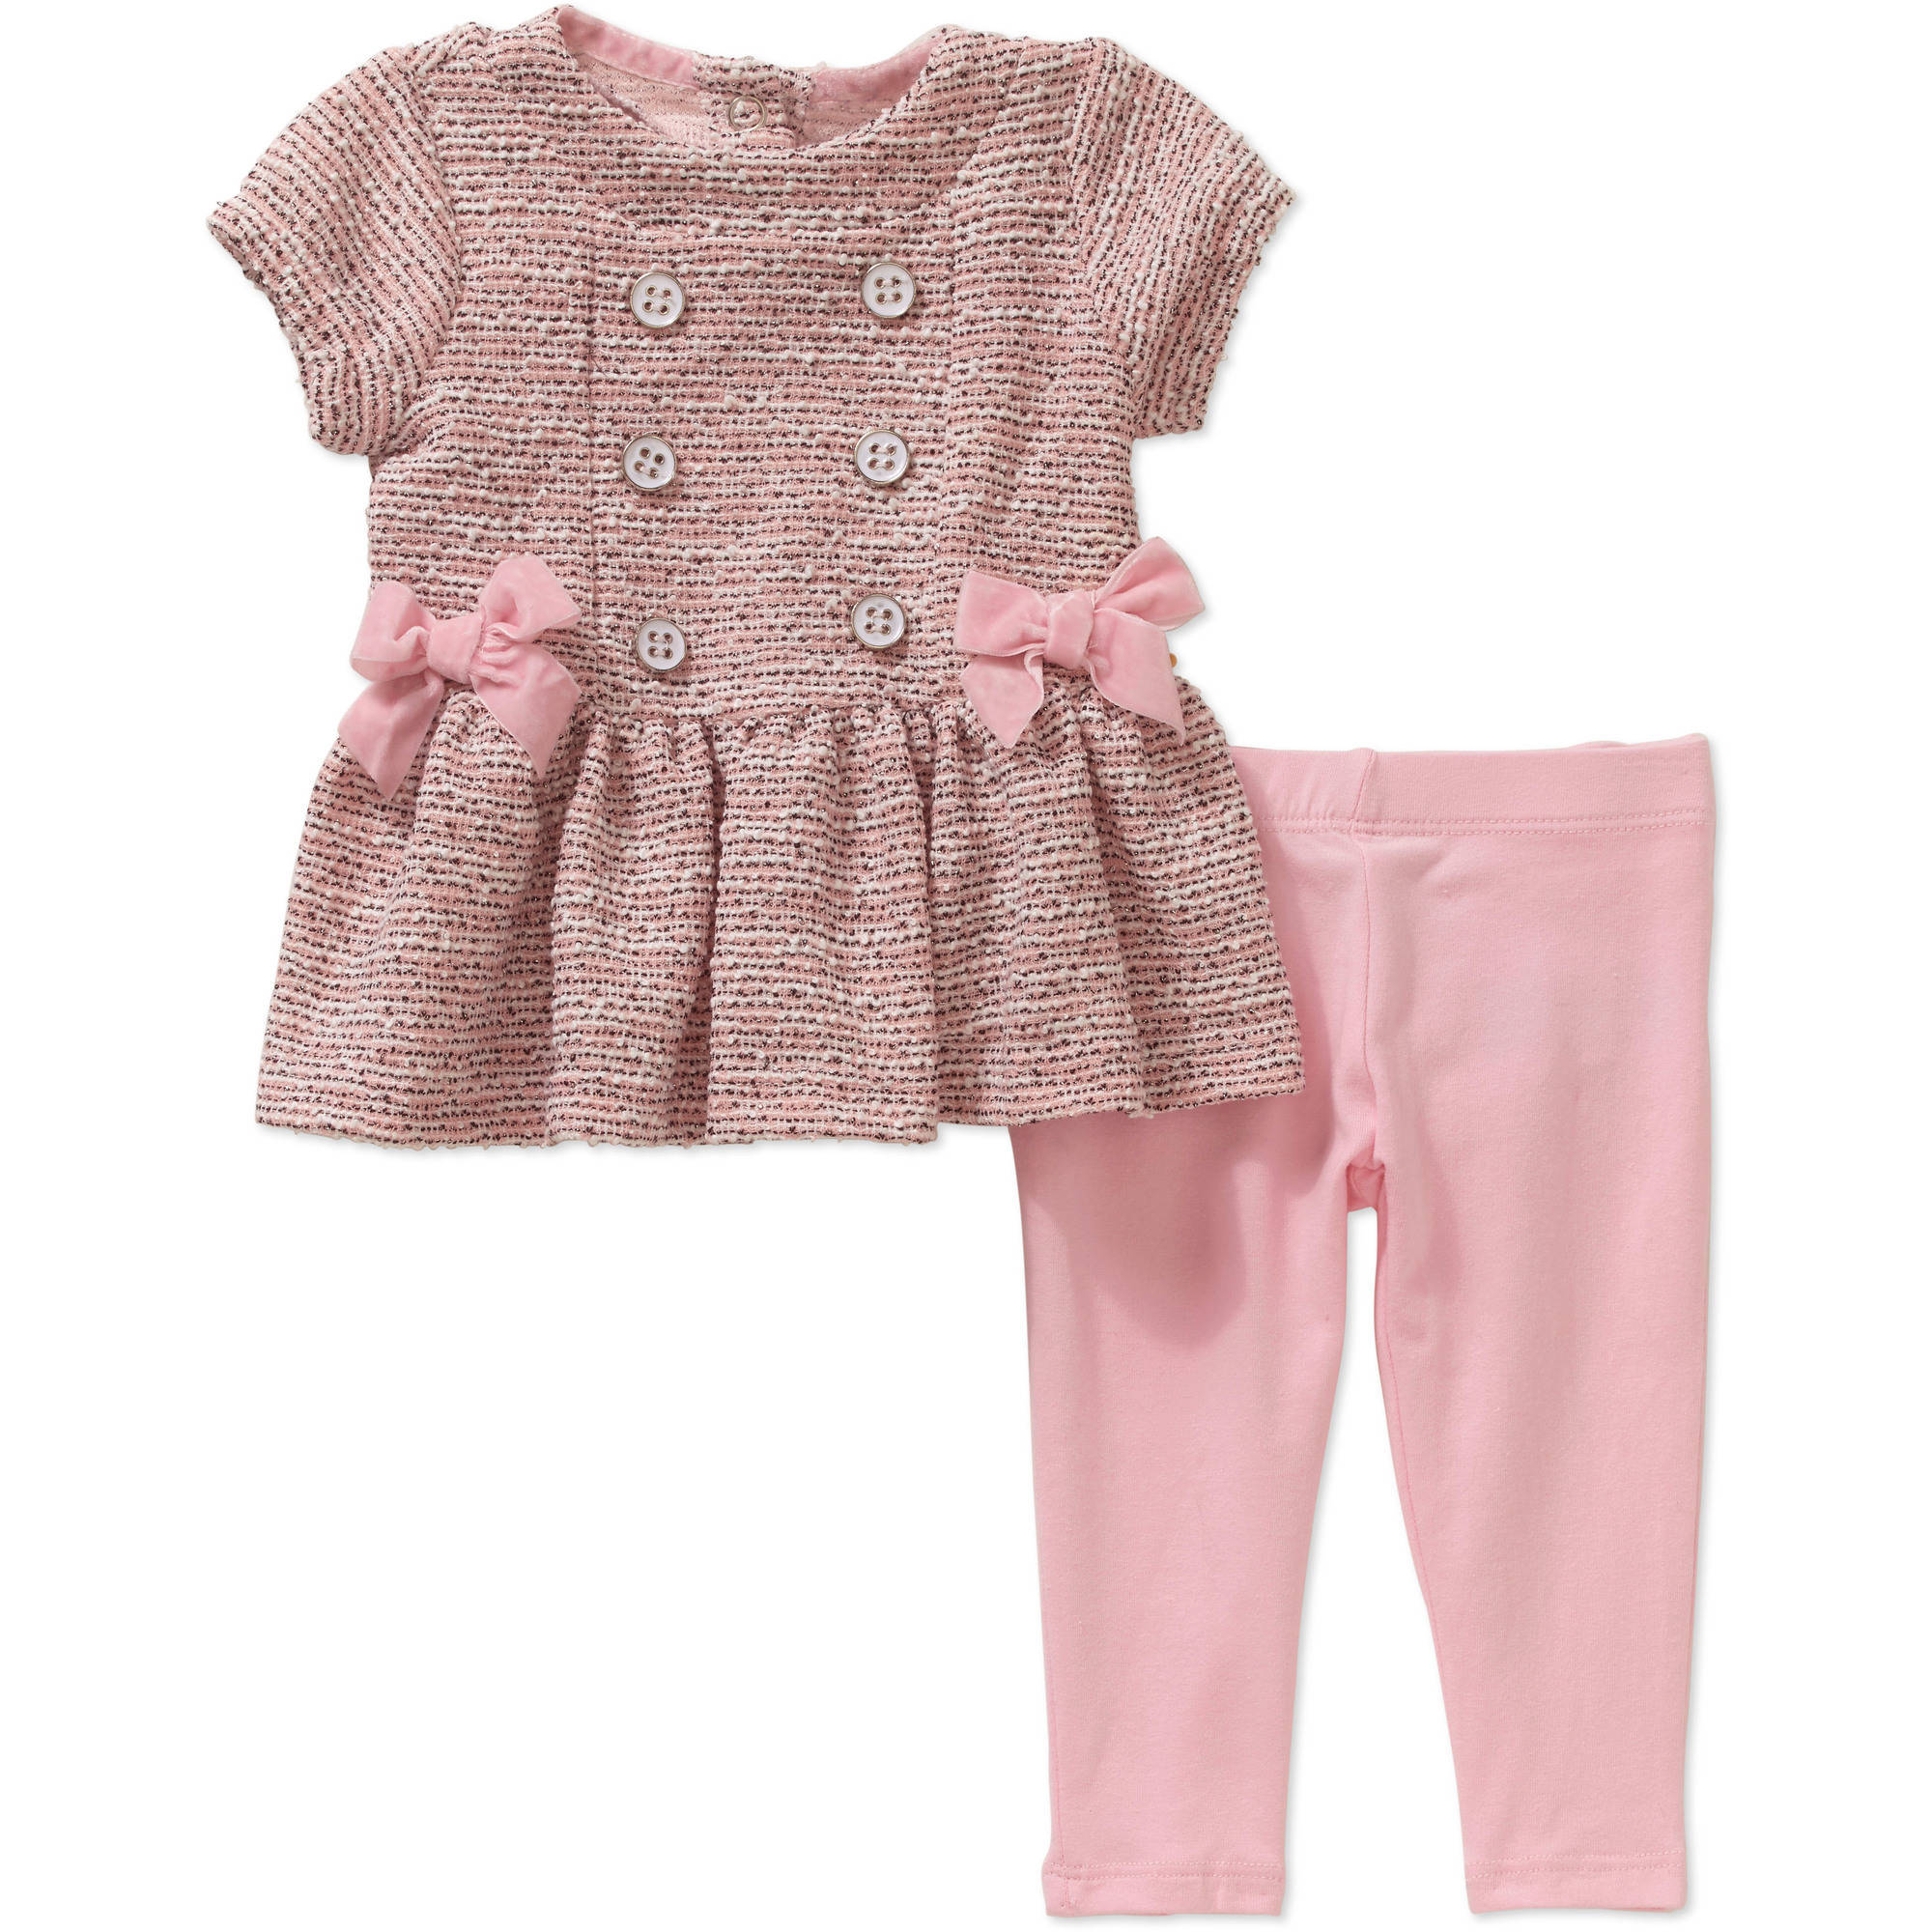 Quiltex Newborn Baby Girls' Bow Peplum Top with Leggings Set